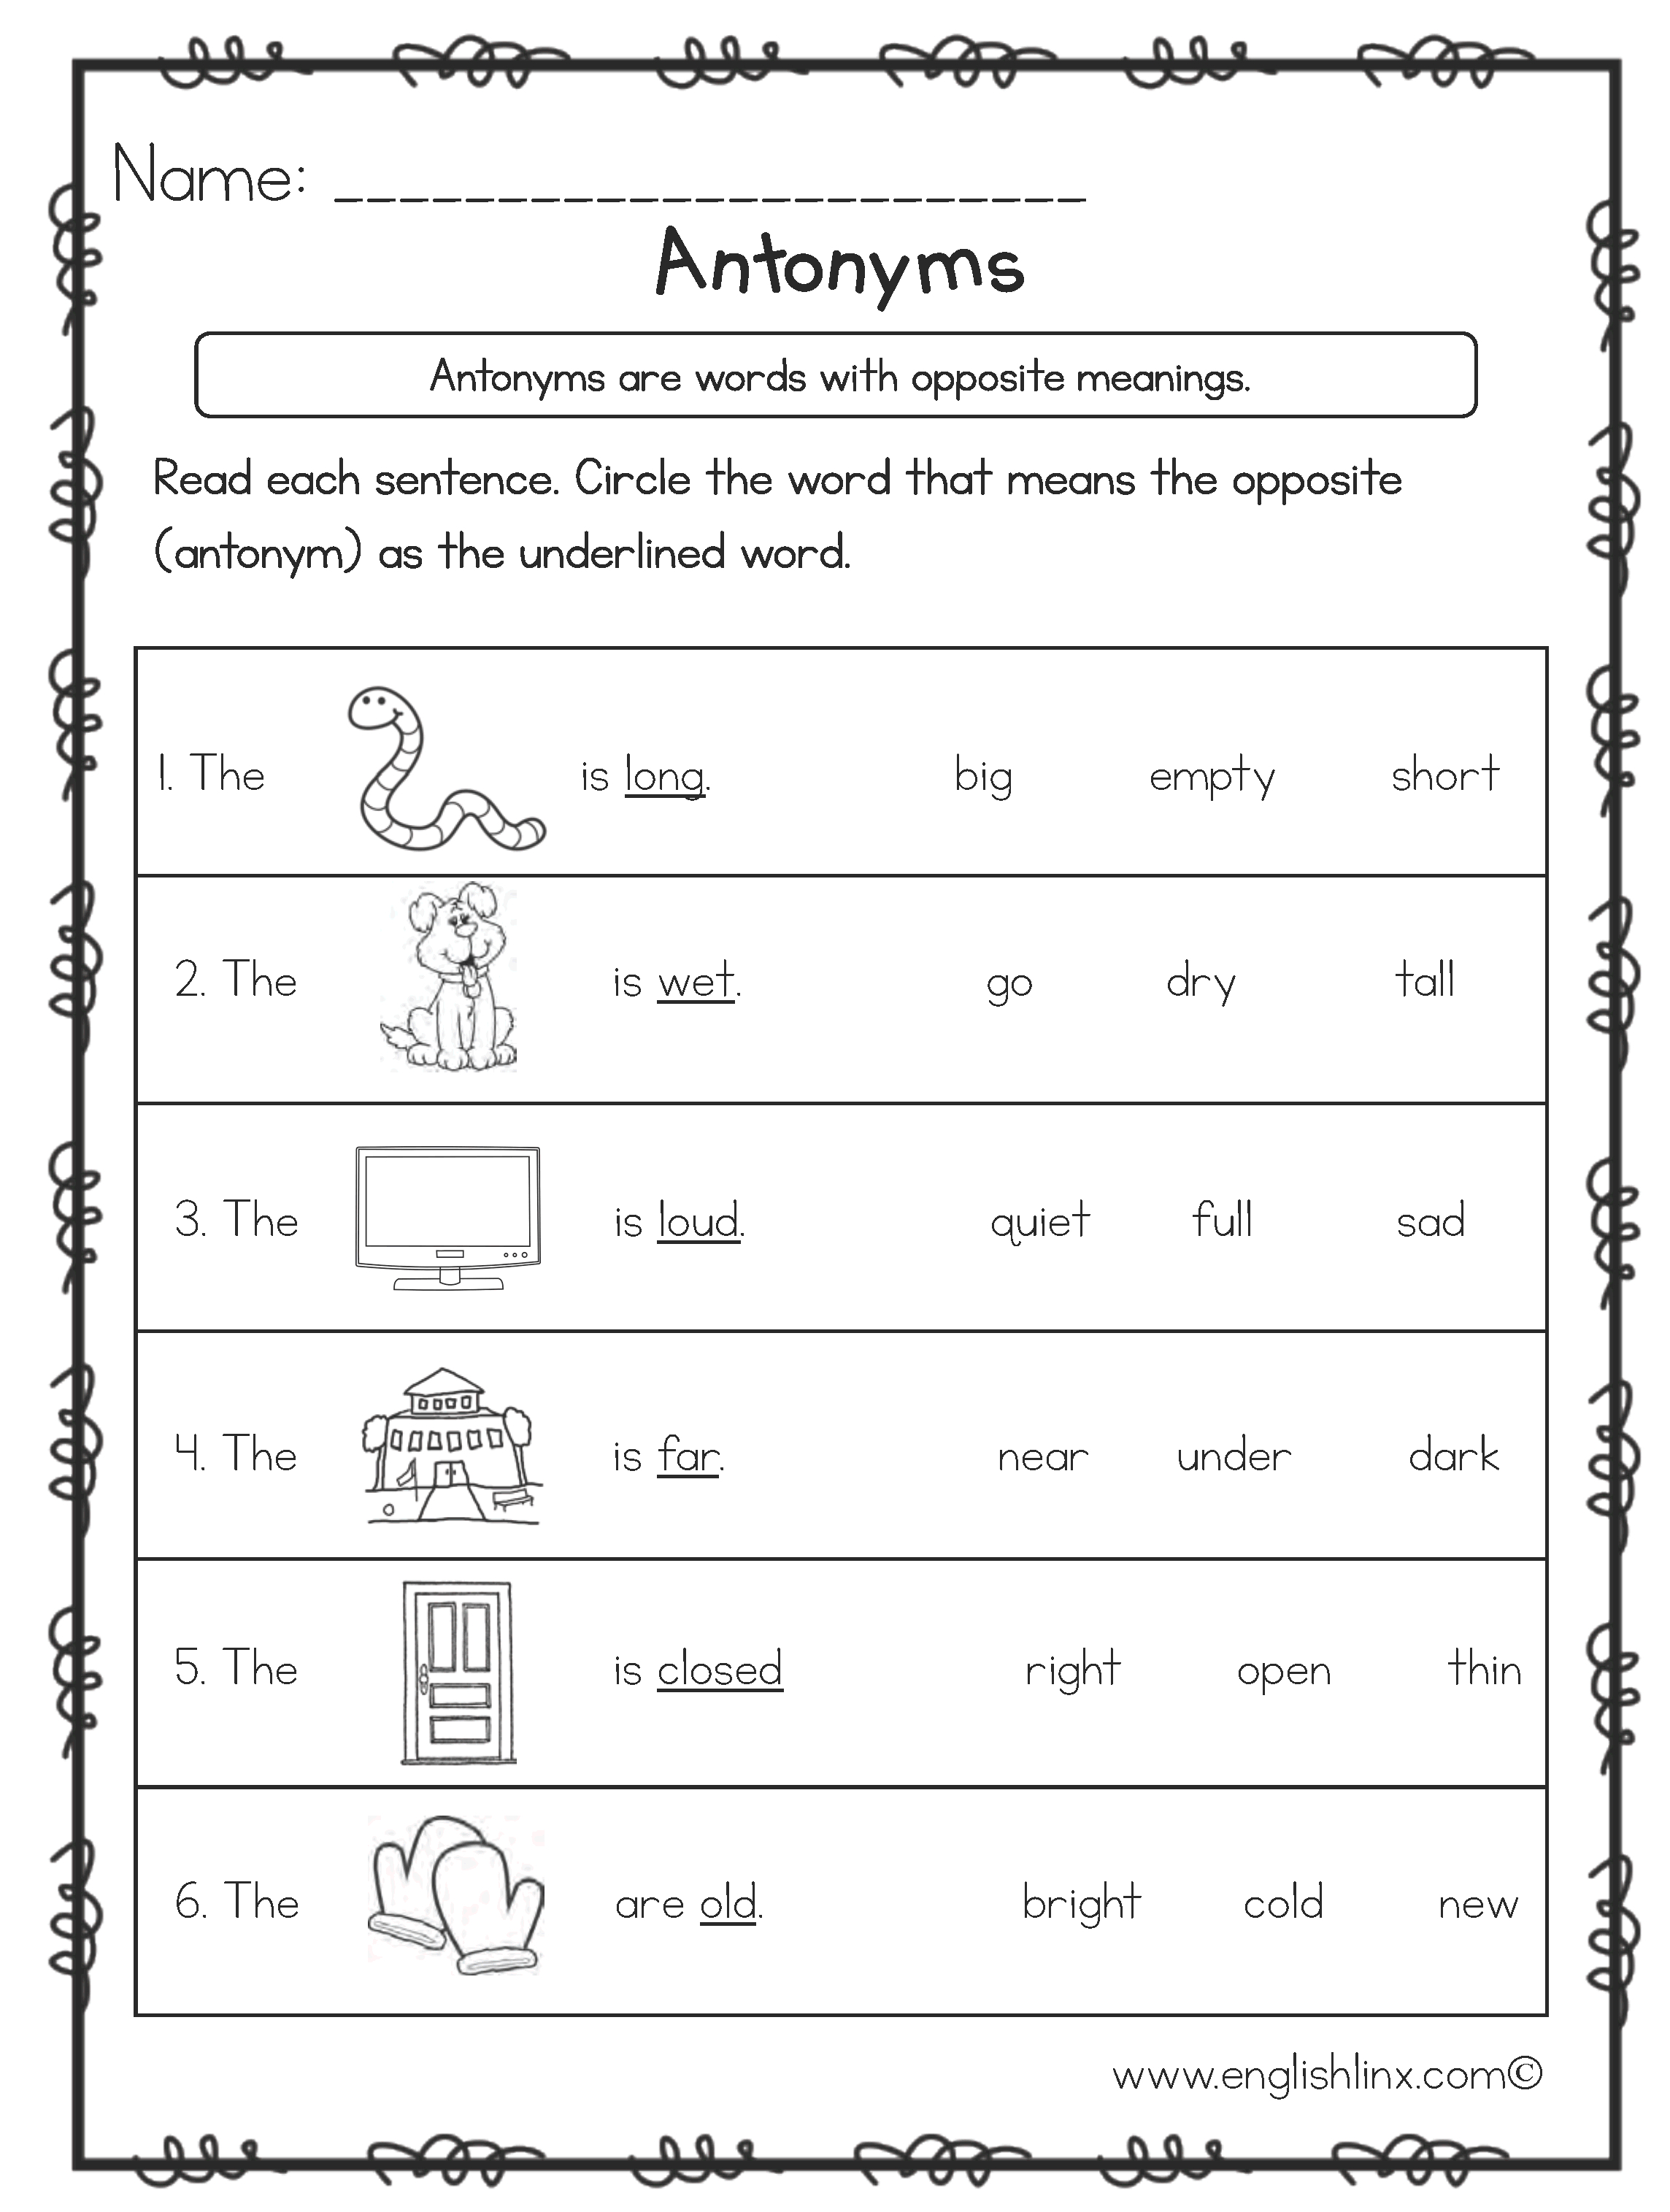 Antonyms Printable Worksheets